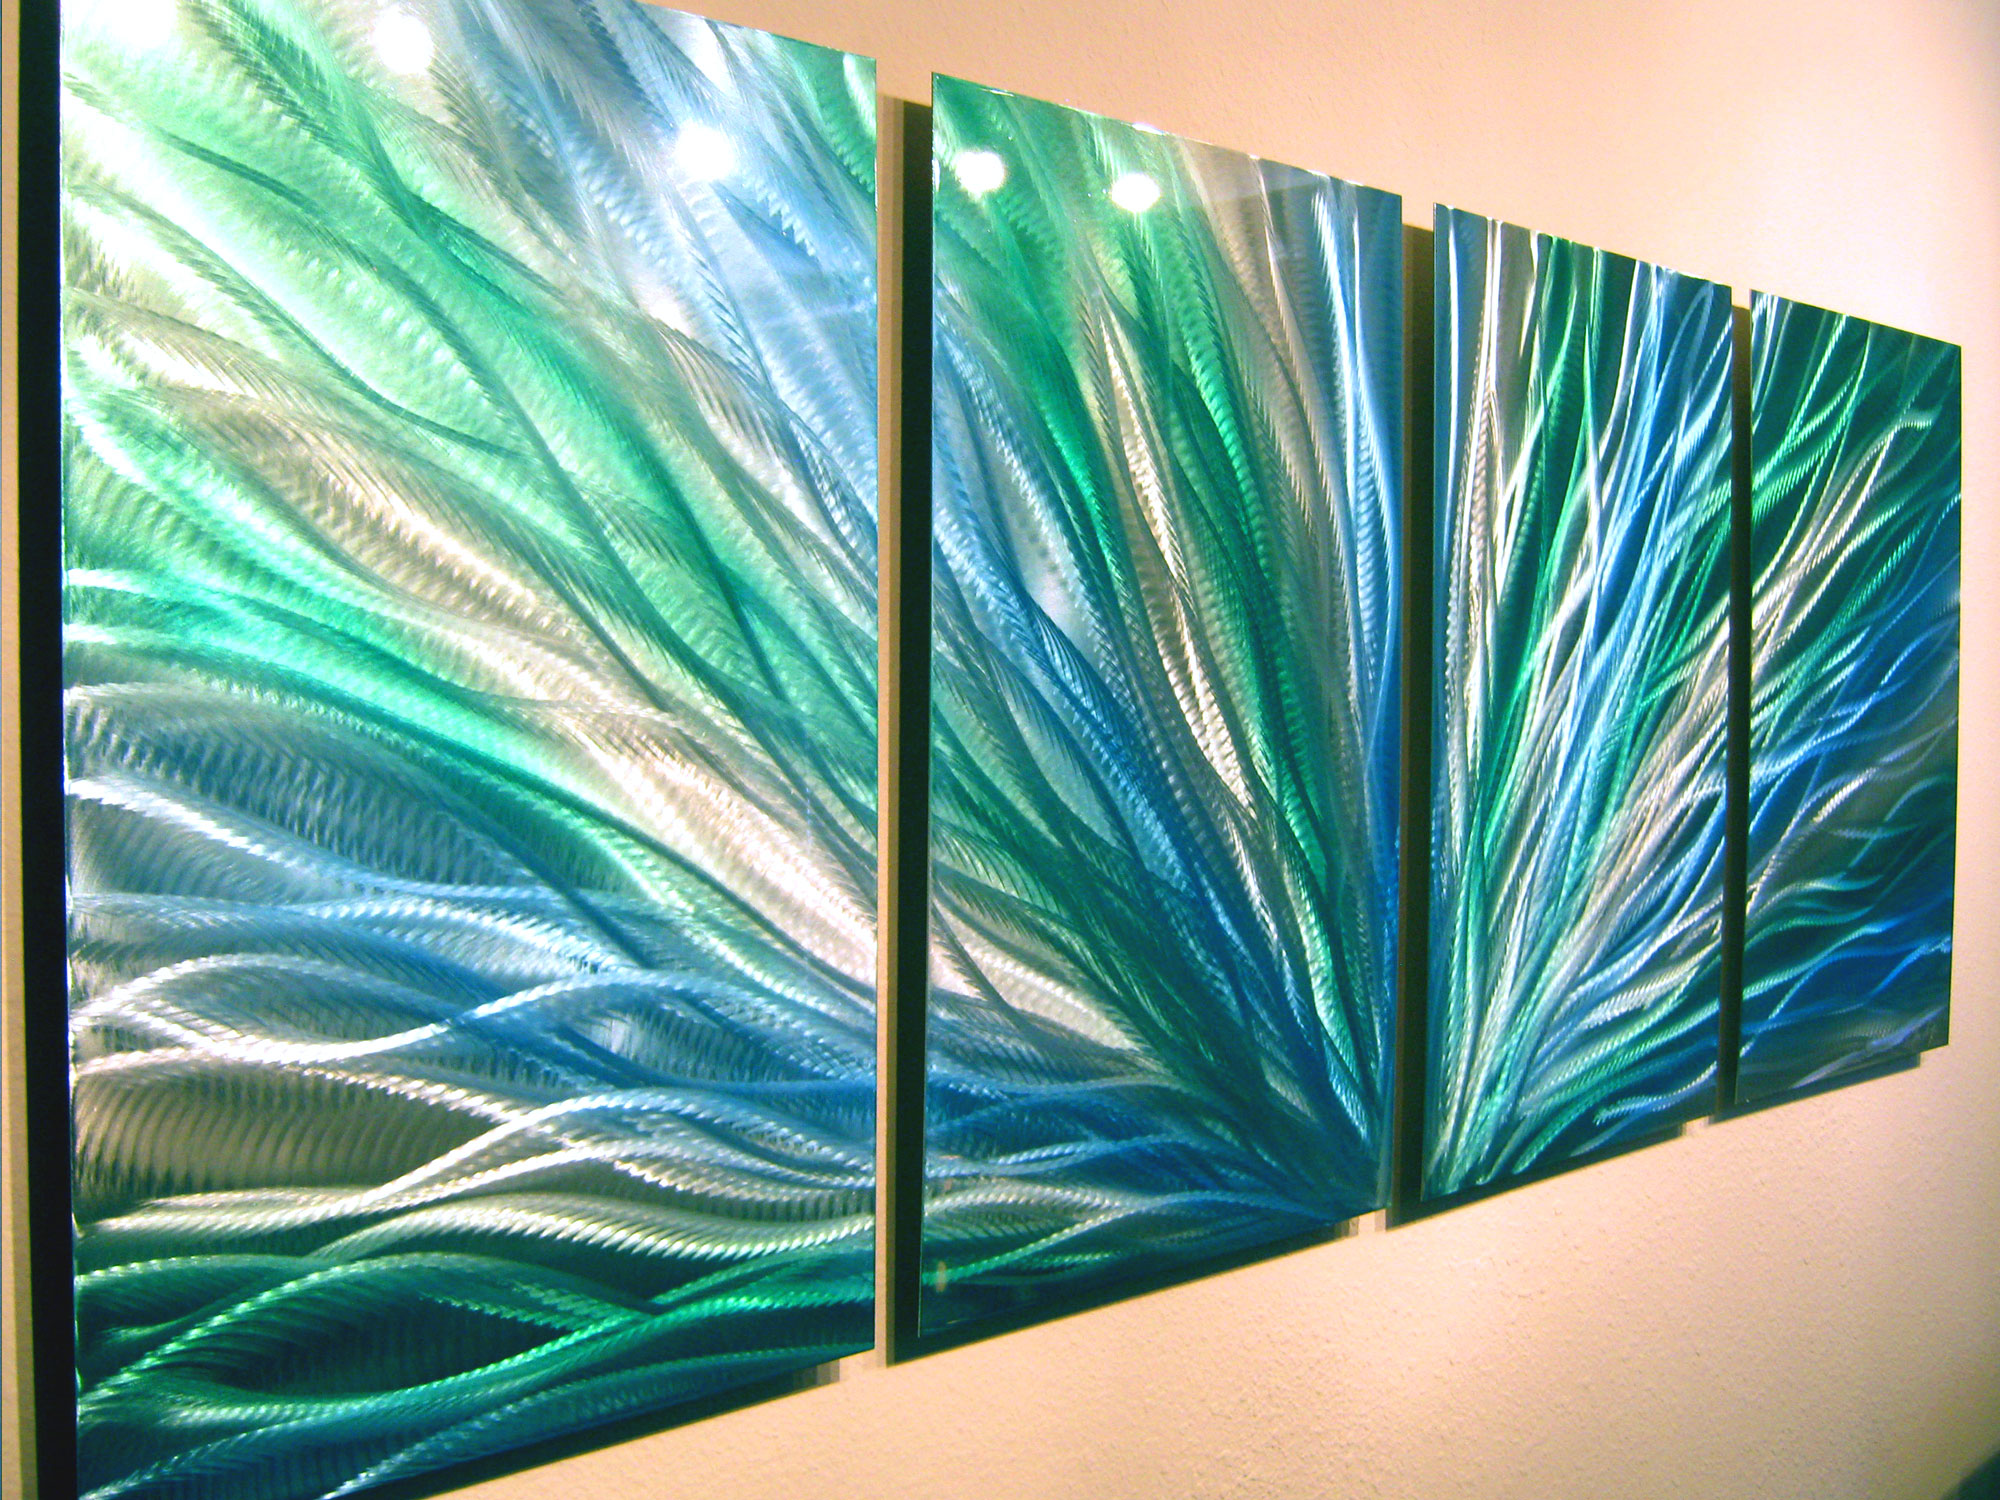 Blue Metal Wall Art Awesome Radiance Blue Green Abstract Metal Wall Art Contemporary Modern Inspiration Design